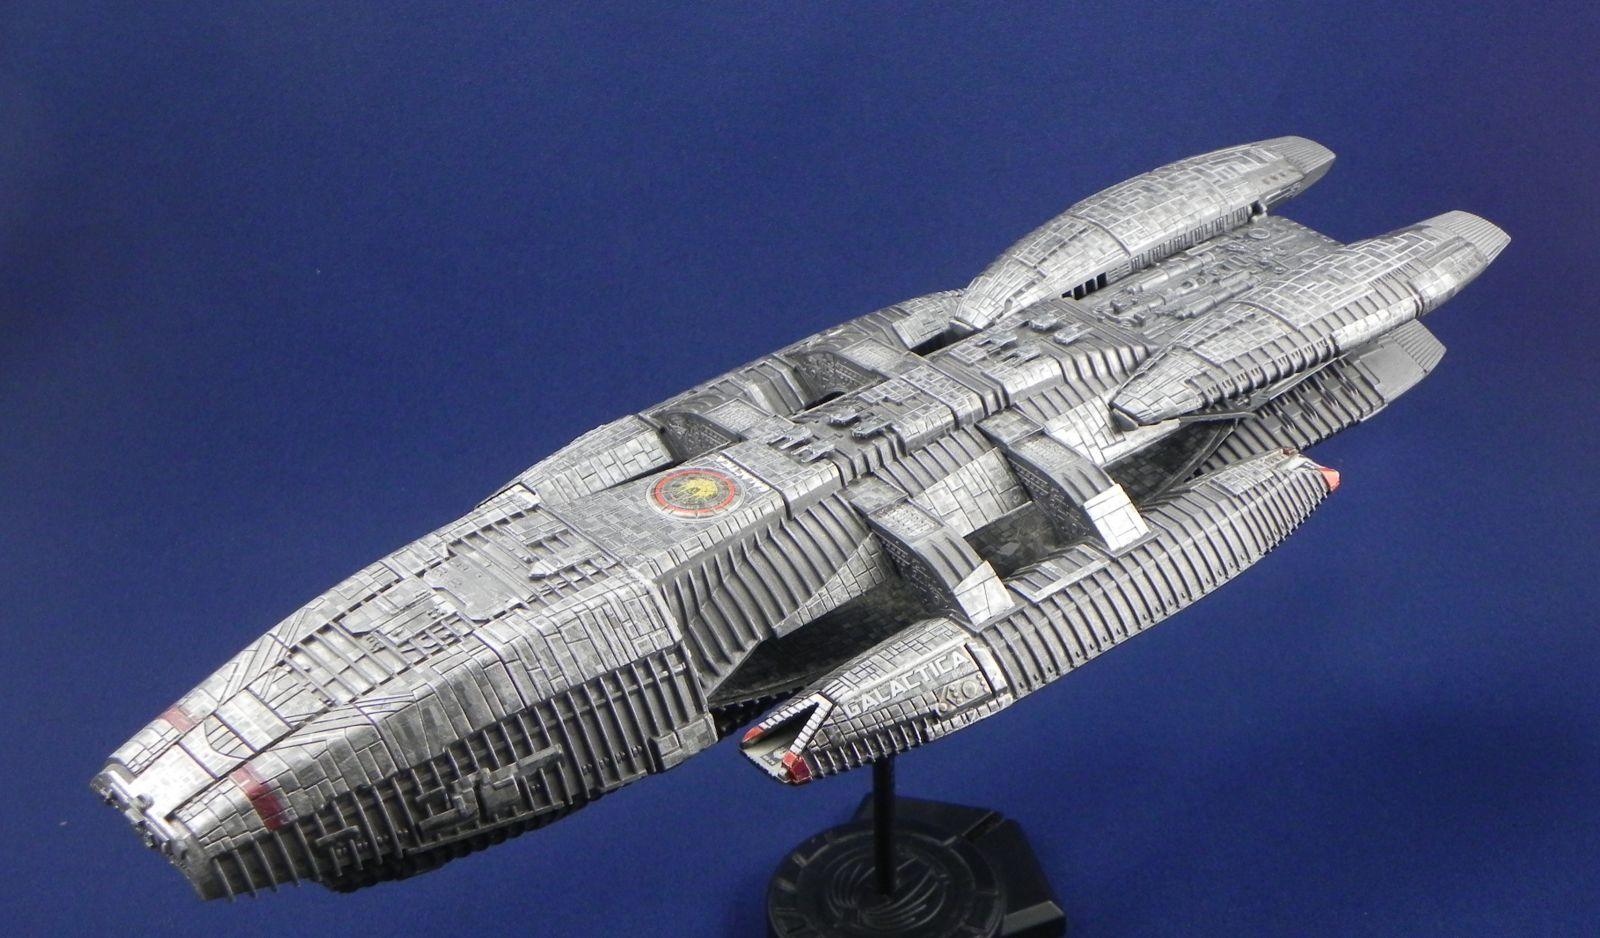 Science Fiction Hobby Scale Modeler